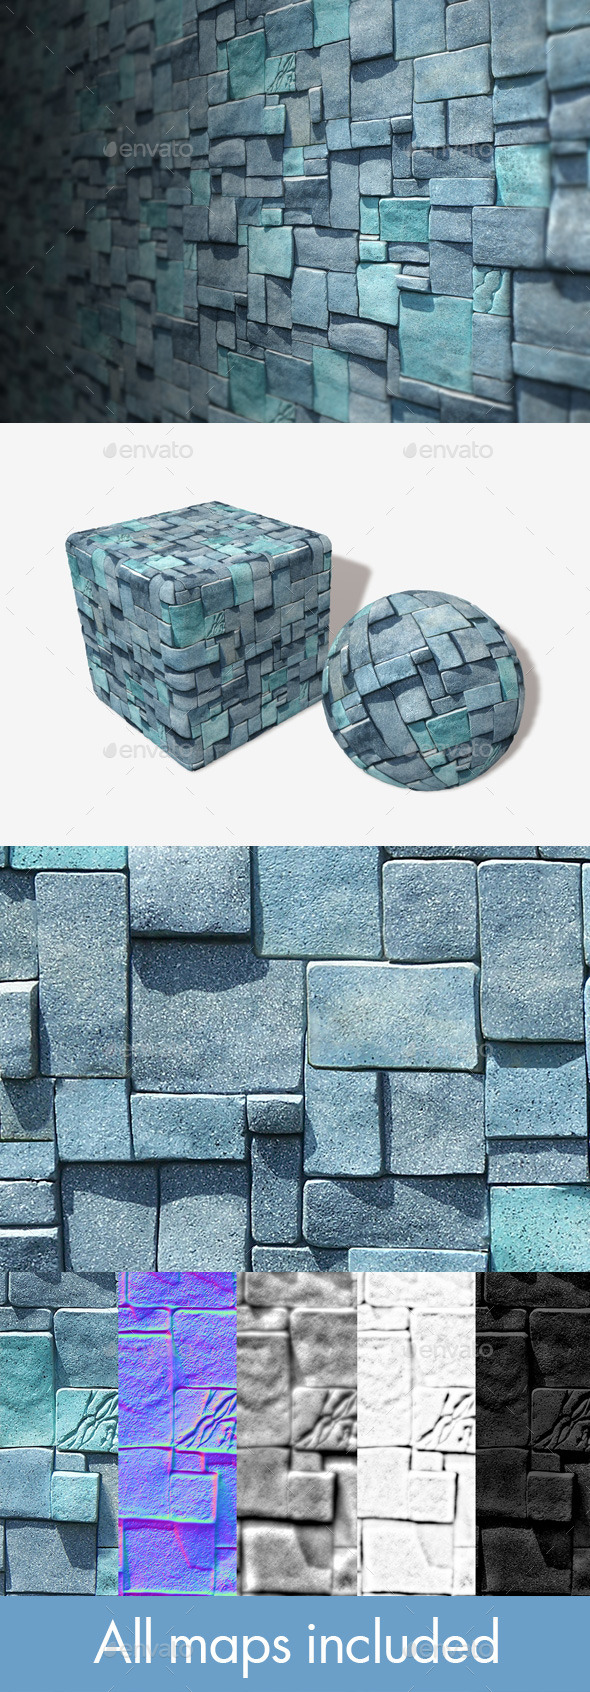 Blue Cube Bricks Seamless Texture - 3DOcean Item for Sale